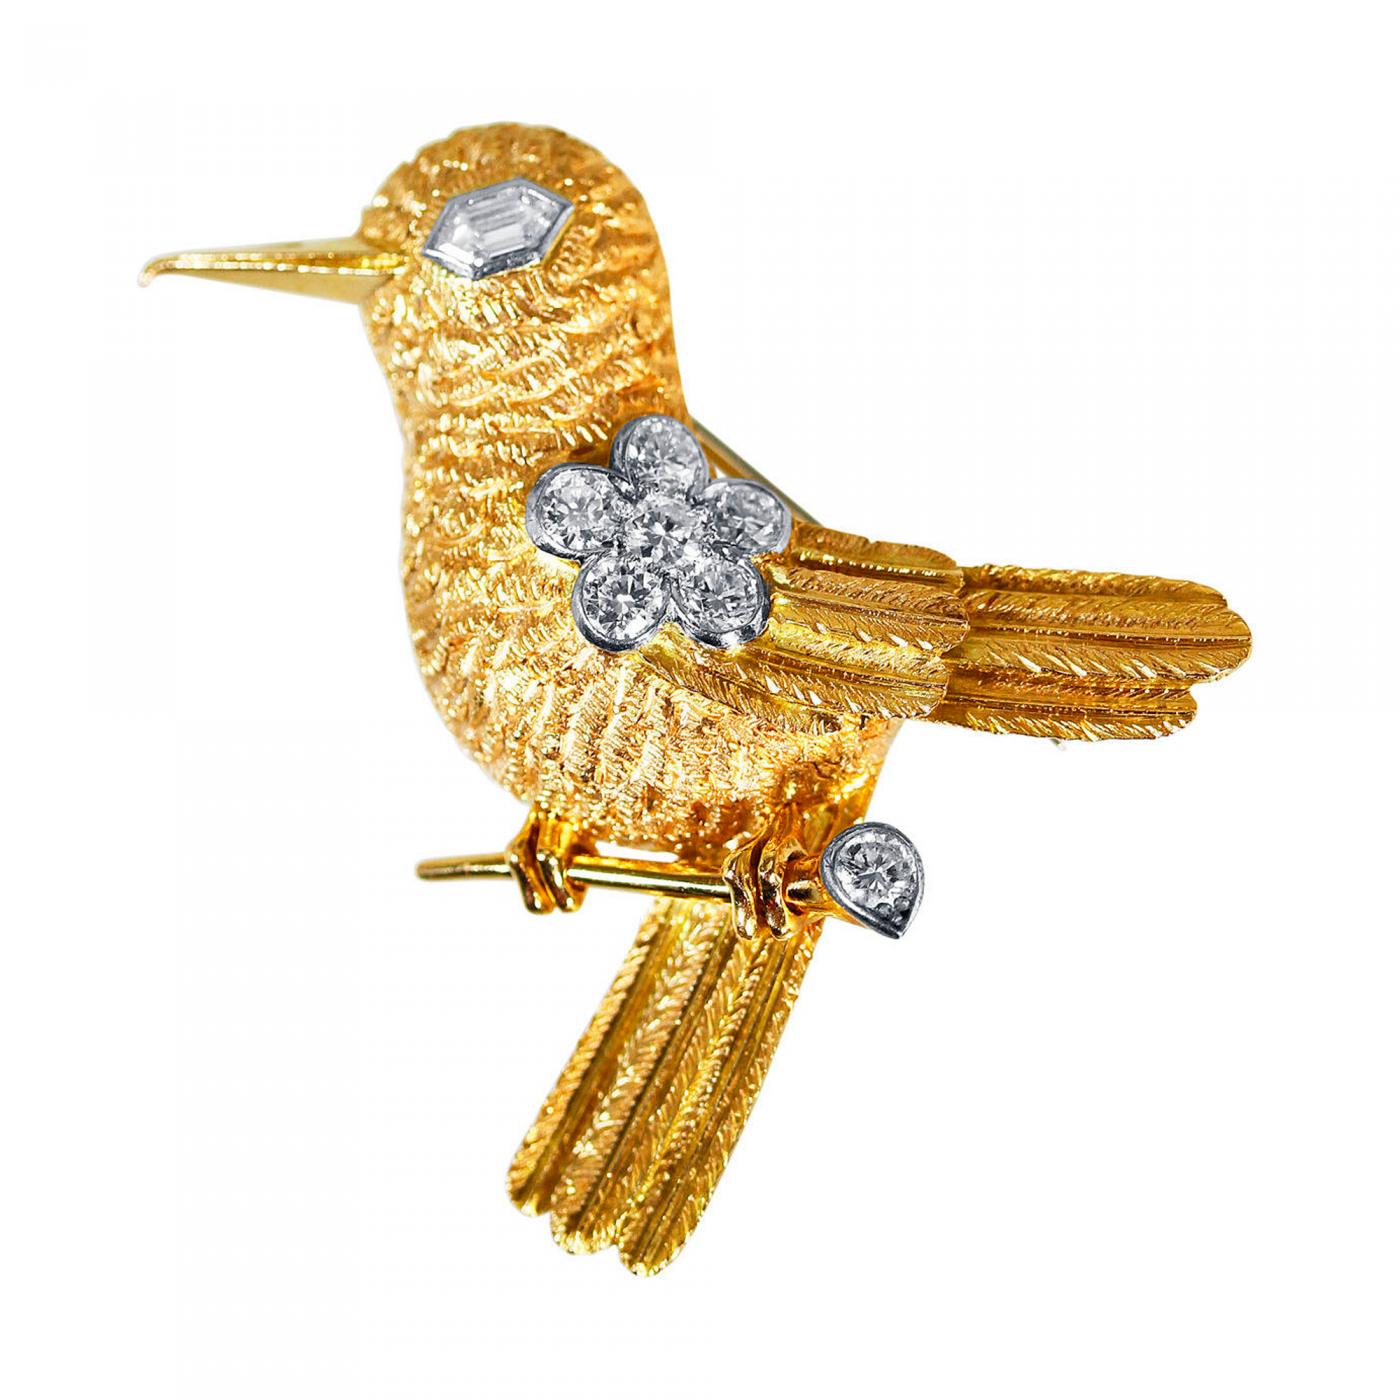 leaf cartier diamond cronan sandra product brooch citrine